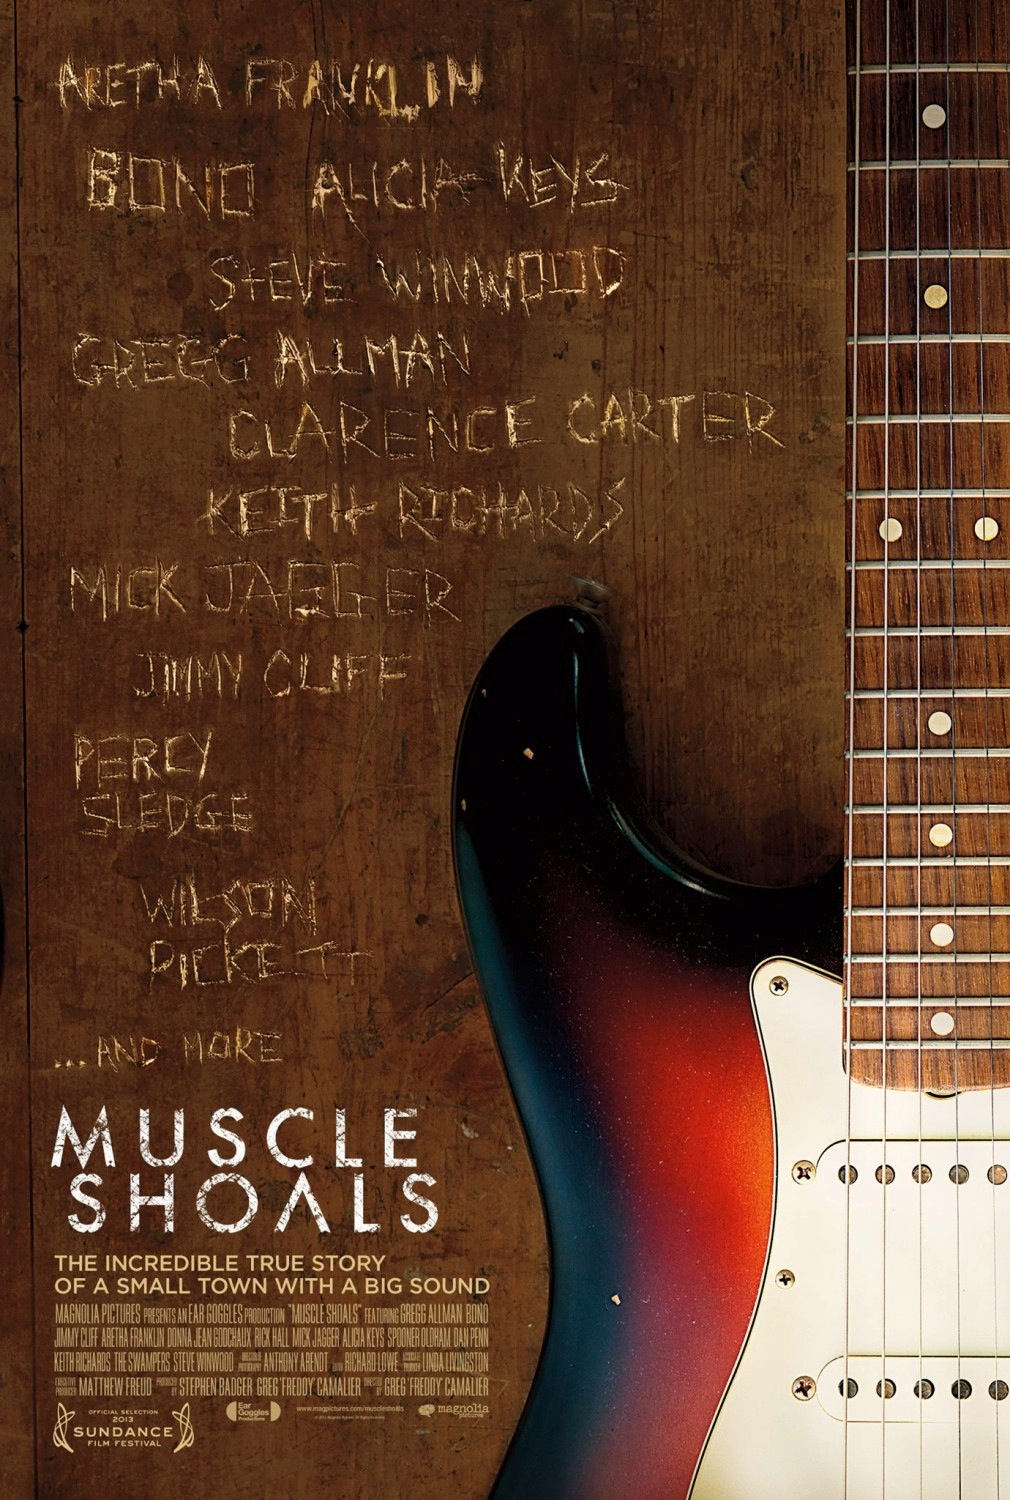 The Soundtrack to the soon to be released movie - Muscle Shoals was relased on itunes today!